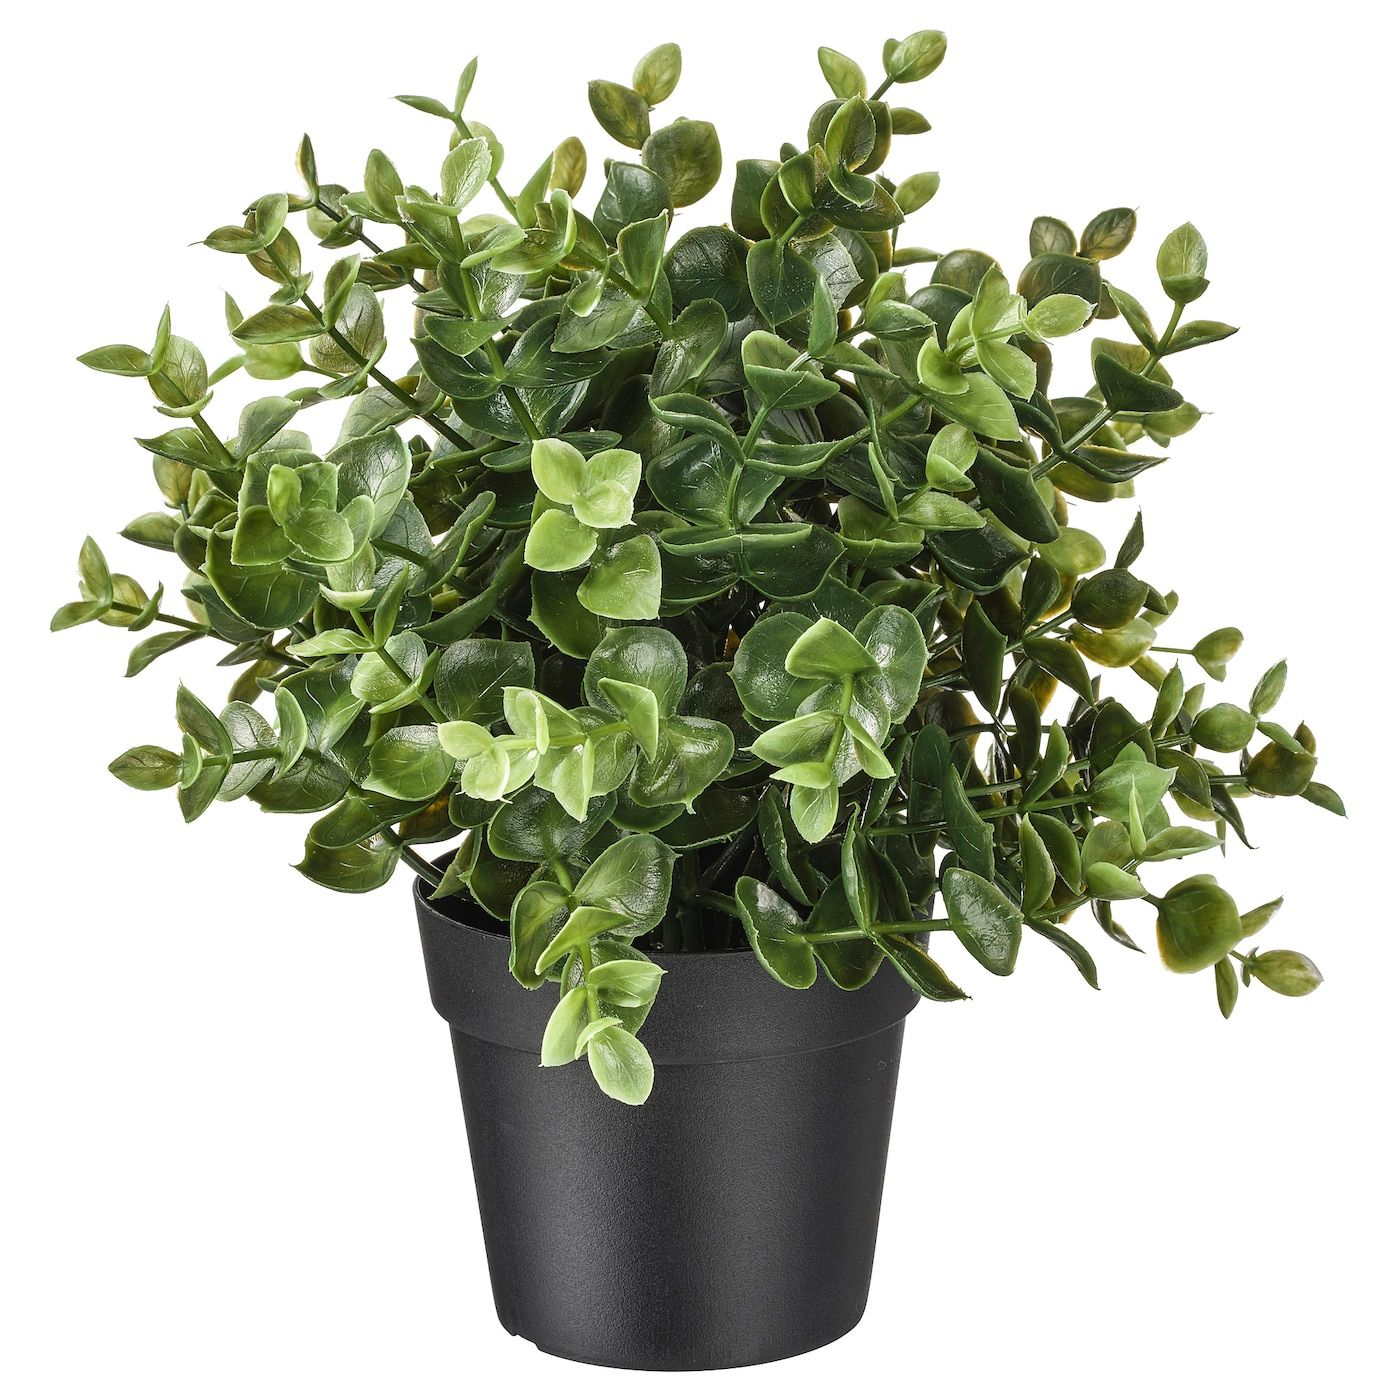 Fejka Artificial Potted Plant Oregano Ikea In 2020 Small Artificial Plants Artificial Potted Plants Artificial Plants Outdoor